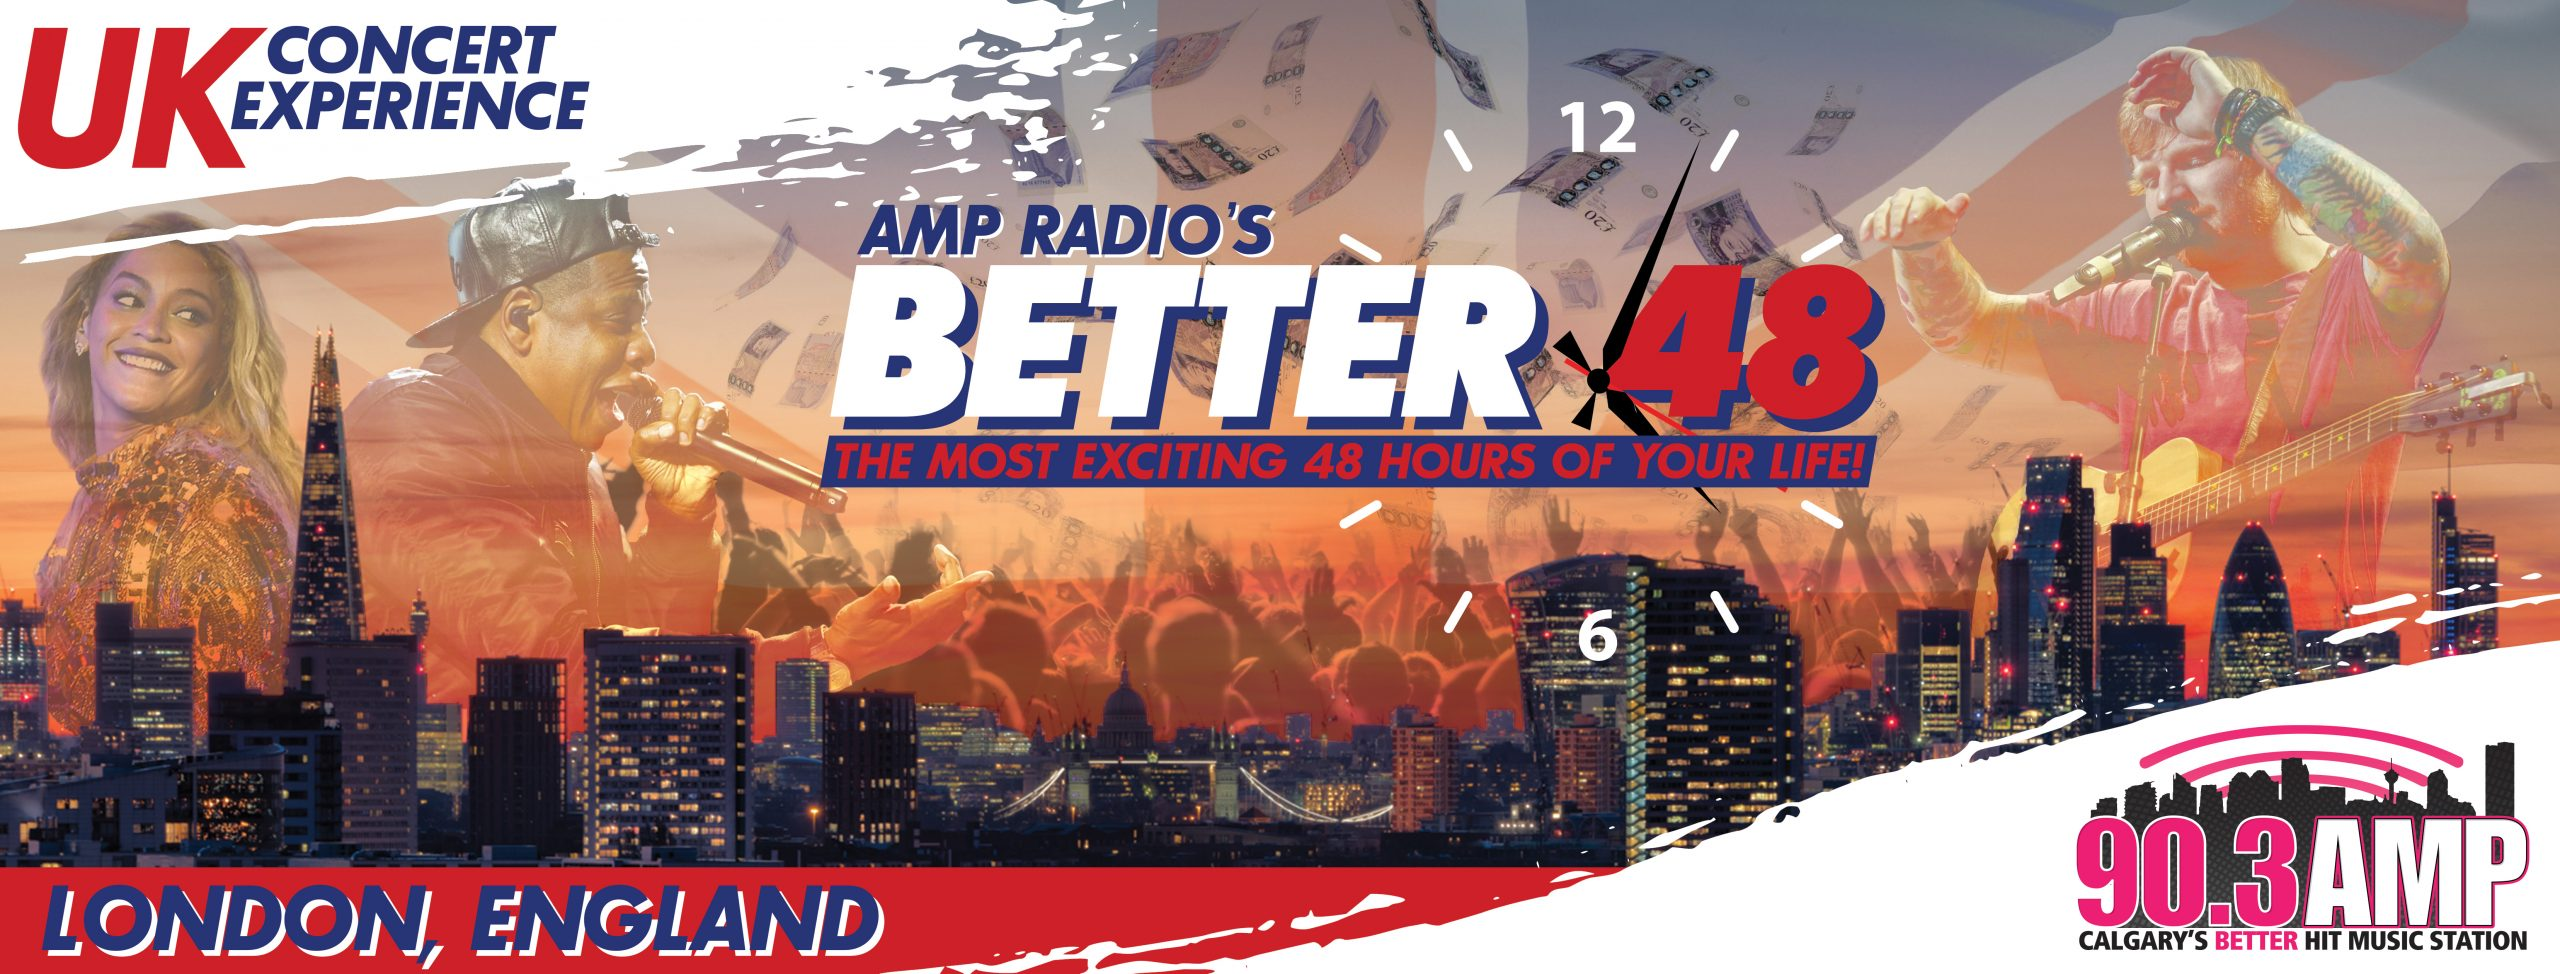 Feature: http://www.ampcalgary.com/amp-radios-better-48-uk-concert-experience/